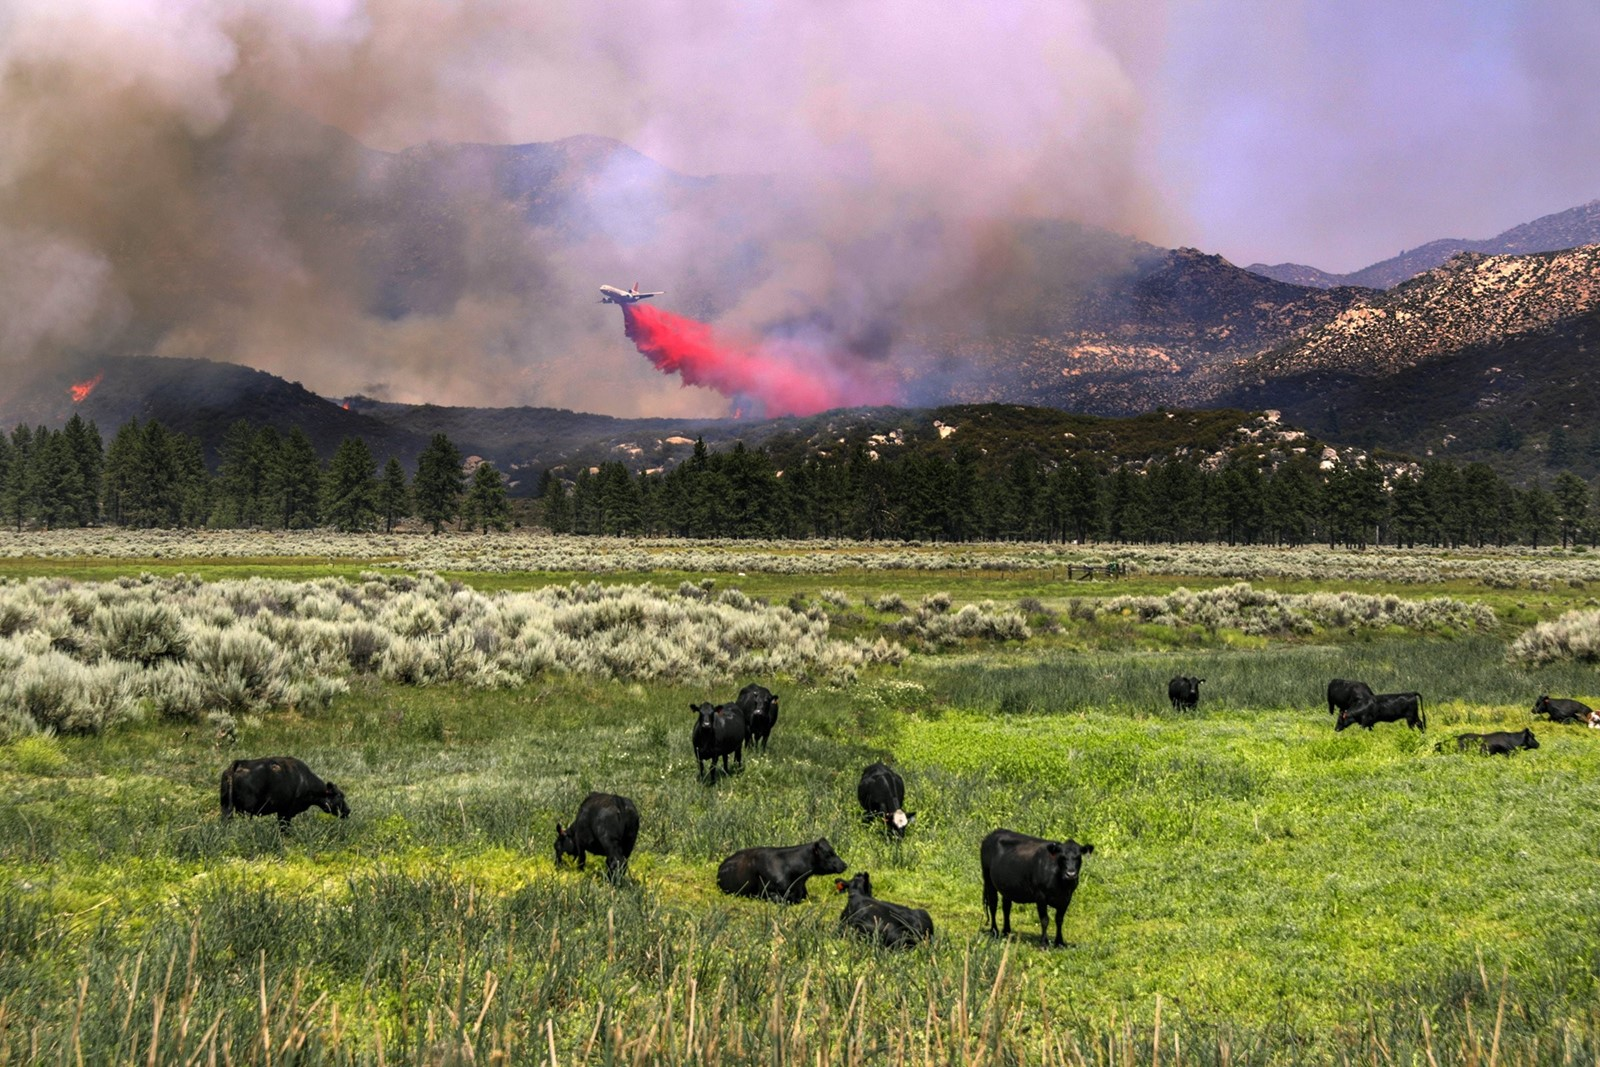 A plane drops fire retardant on the Cranston fire along Highway 74 as seemingly uninterested cows graze on Friday near Lake Hemet. — Photograph: Irfan Khan/Los Angeles Times.